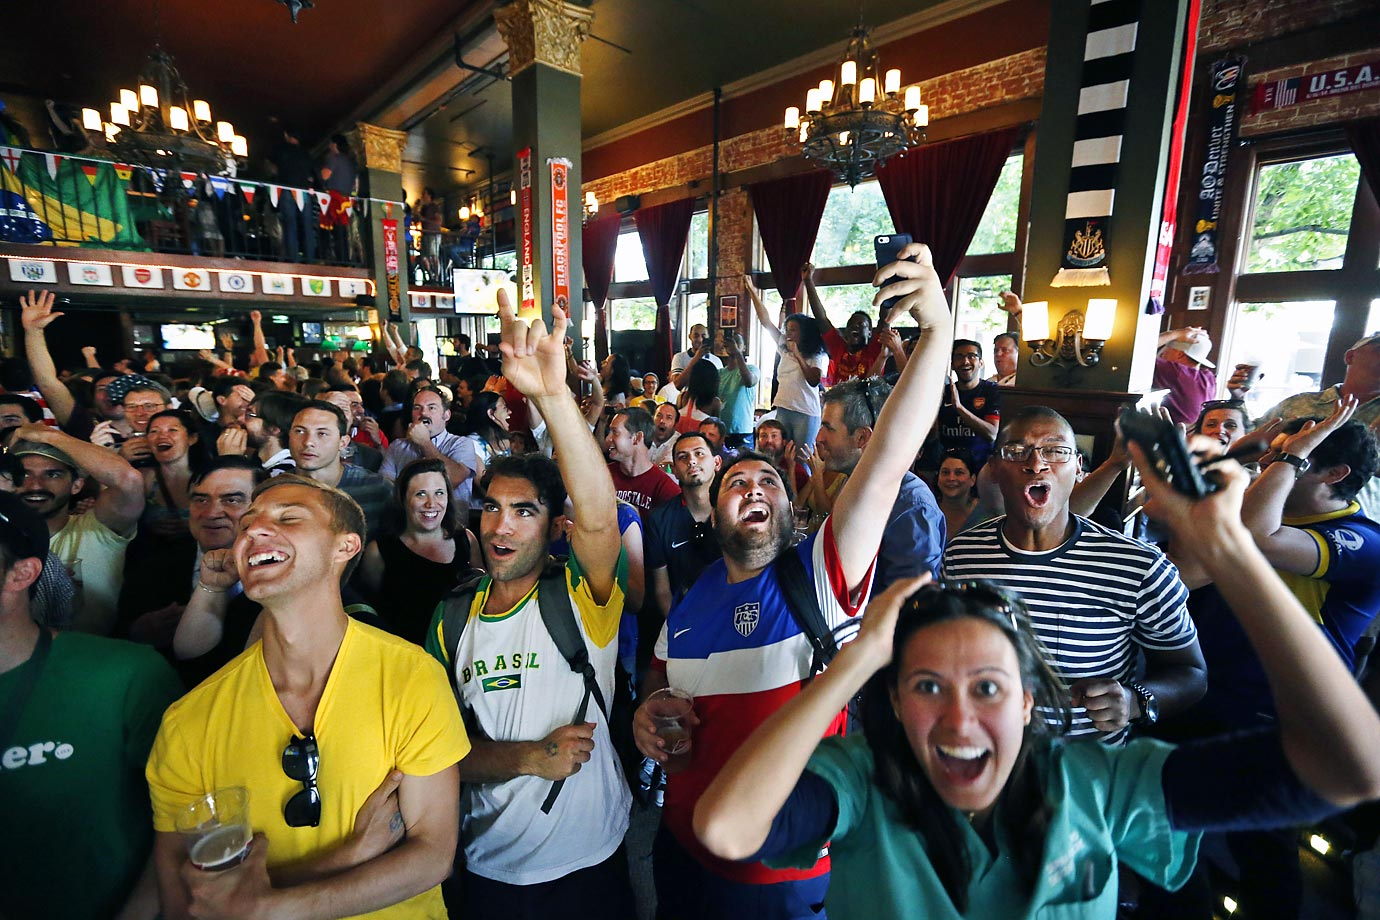 Brazil fans inside The Three Lions World Football Pub, Denver, Colo.